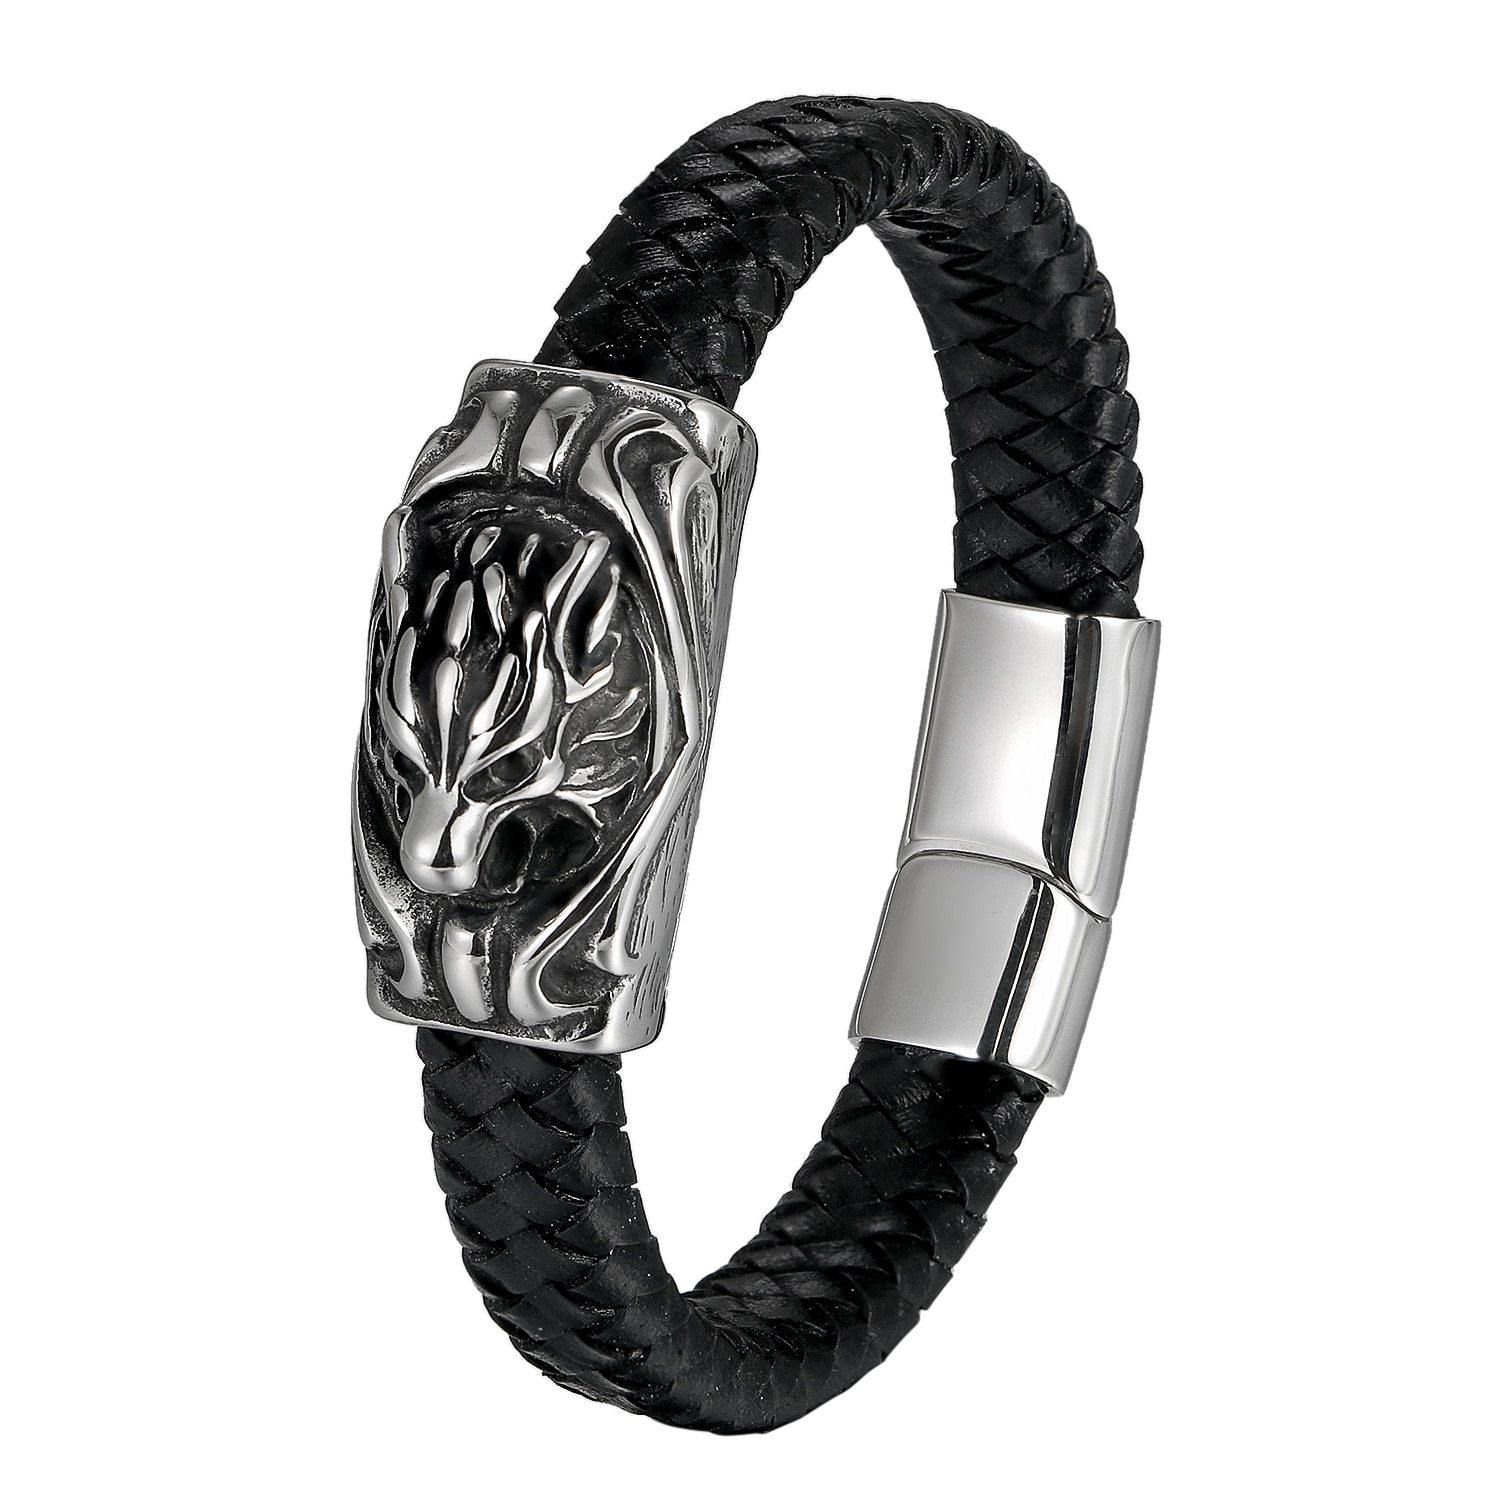 Antique Dragon Head Leather Bracelet Magnetic Clasp 316L Stainless Steel Bracelet for Men